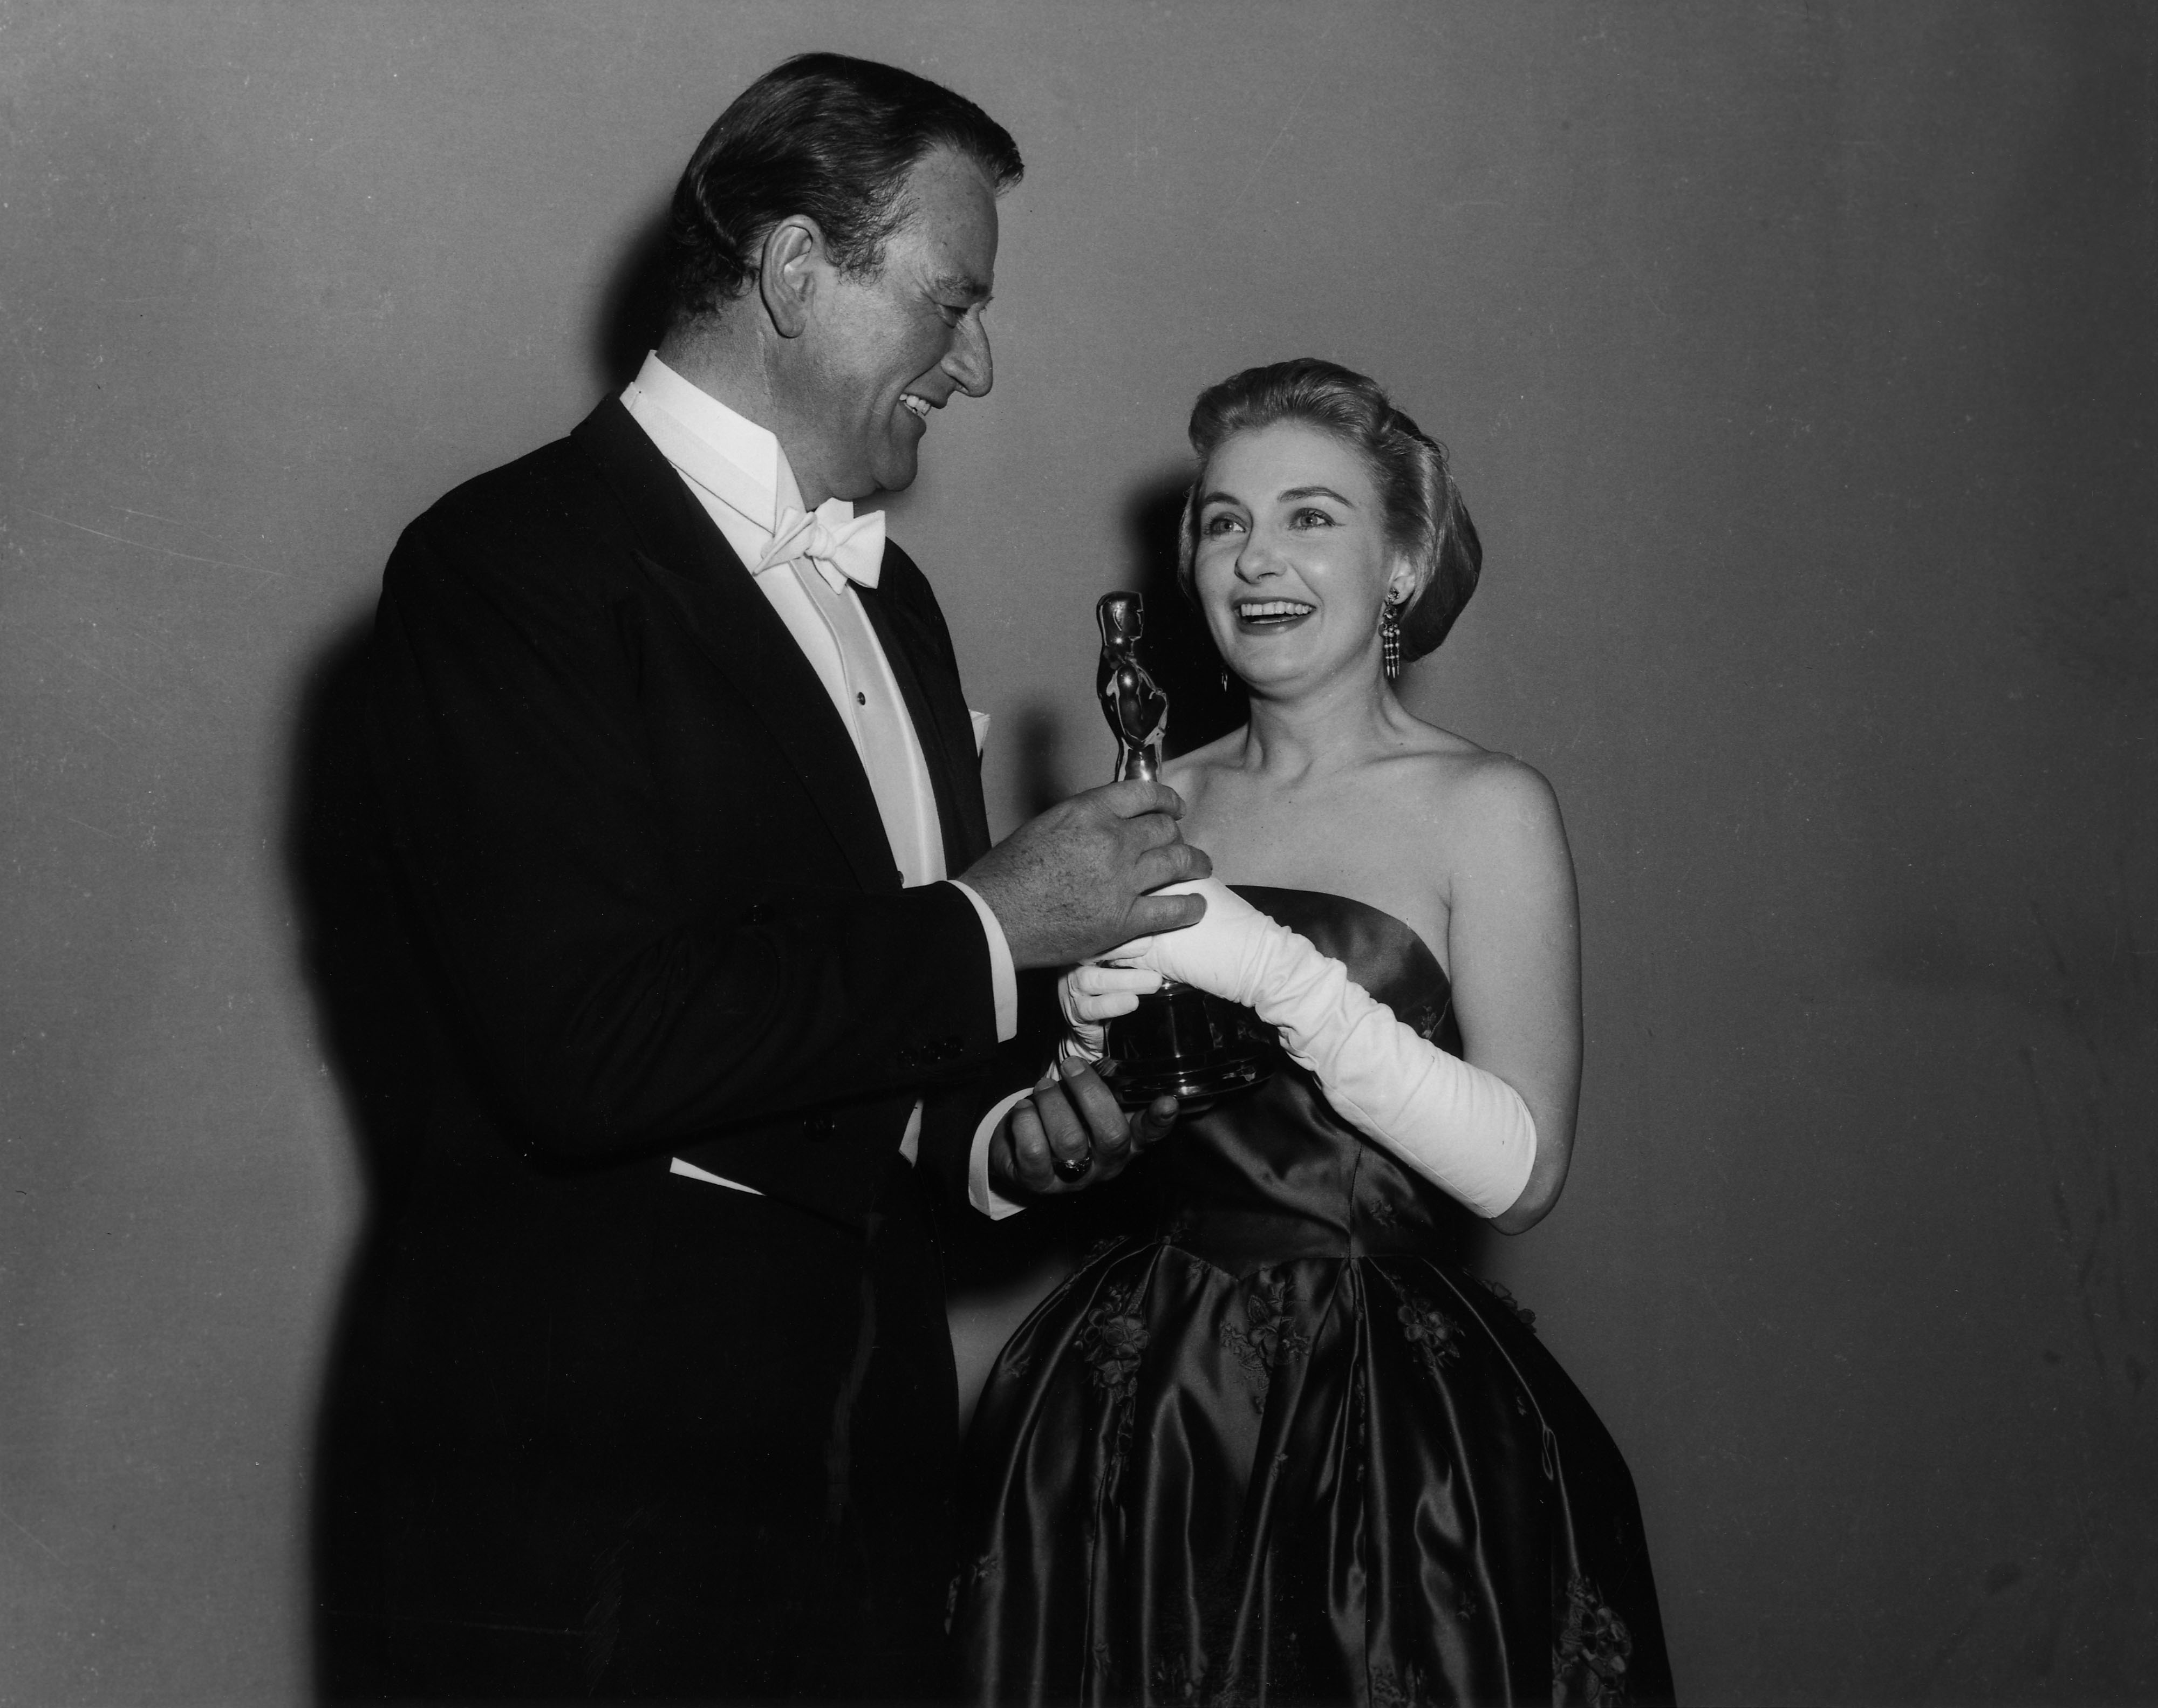 Sophia Loren also S together with Awards Ceremony Program Template 1 likewise Study Reveals Oscar Winners Thank Harvey Weinstein God Half Mention Academy besides 19 Best Picture Winners Available On Instant  flix. on oscars academy awards 1953